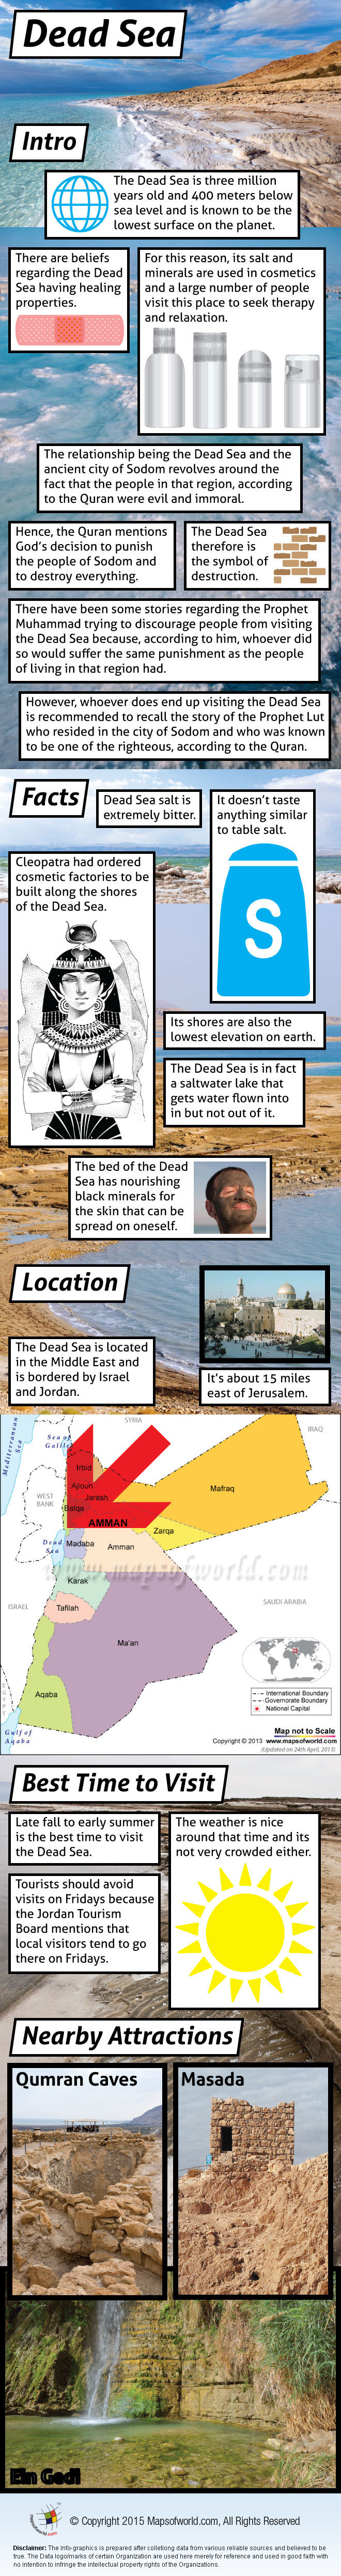 Dead Sea - Facts & Infographic